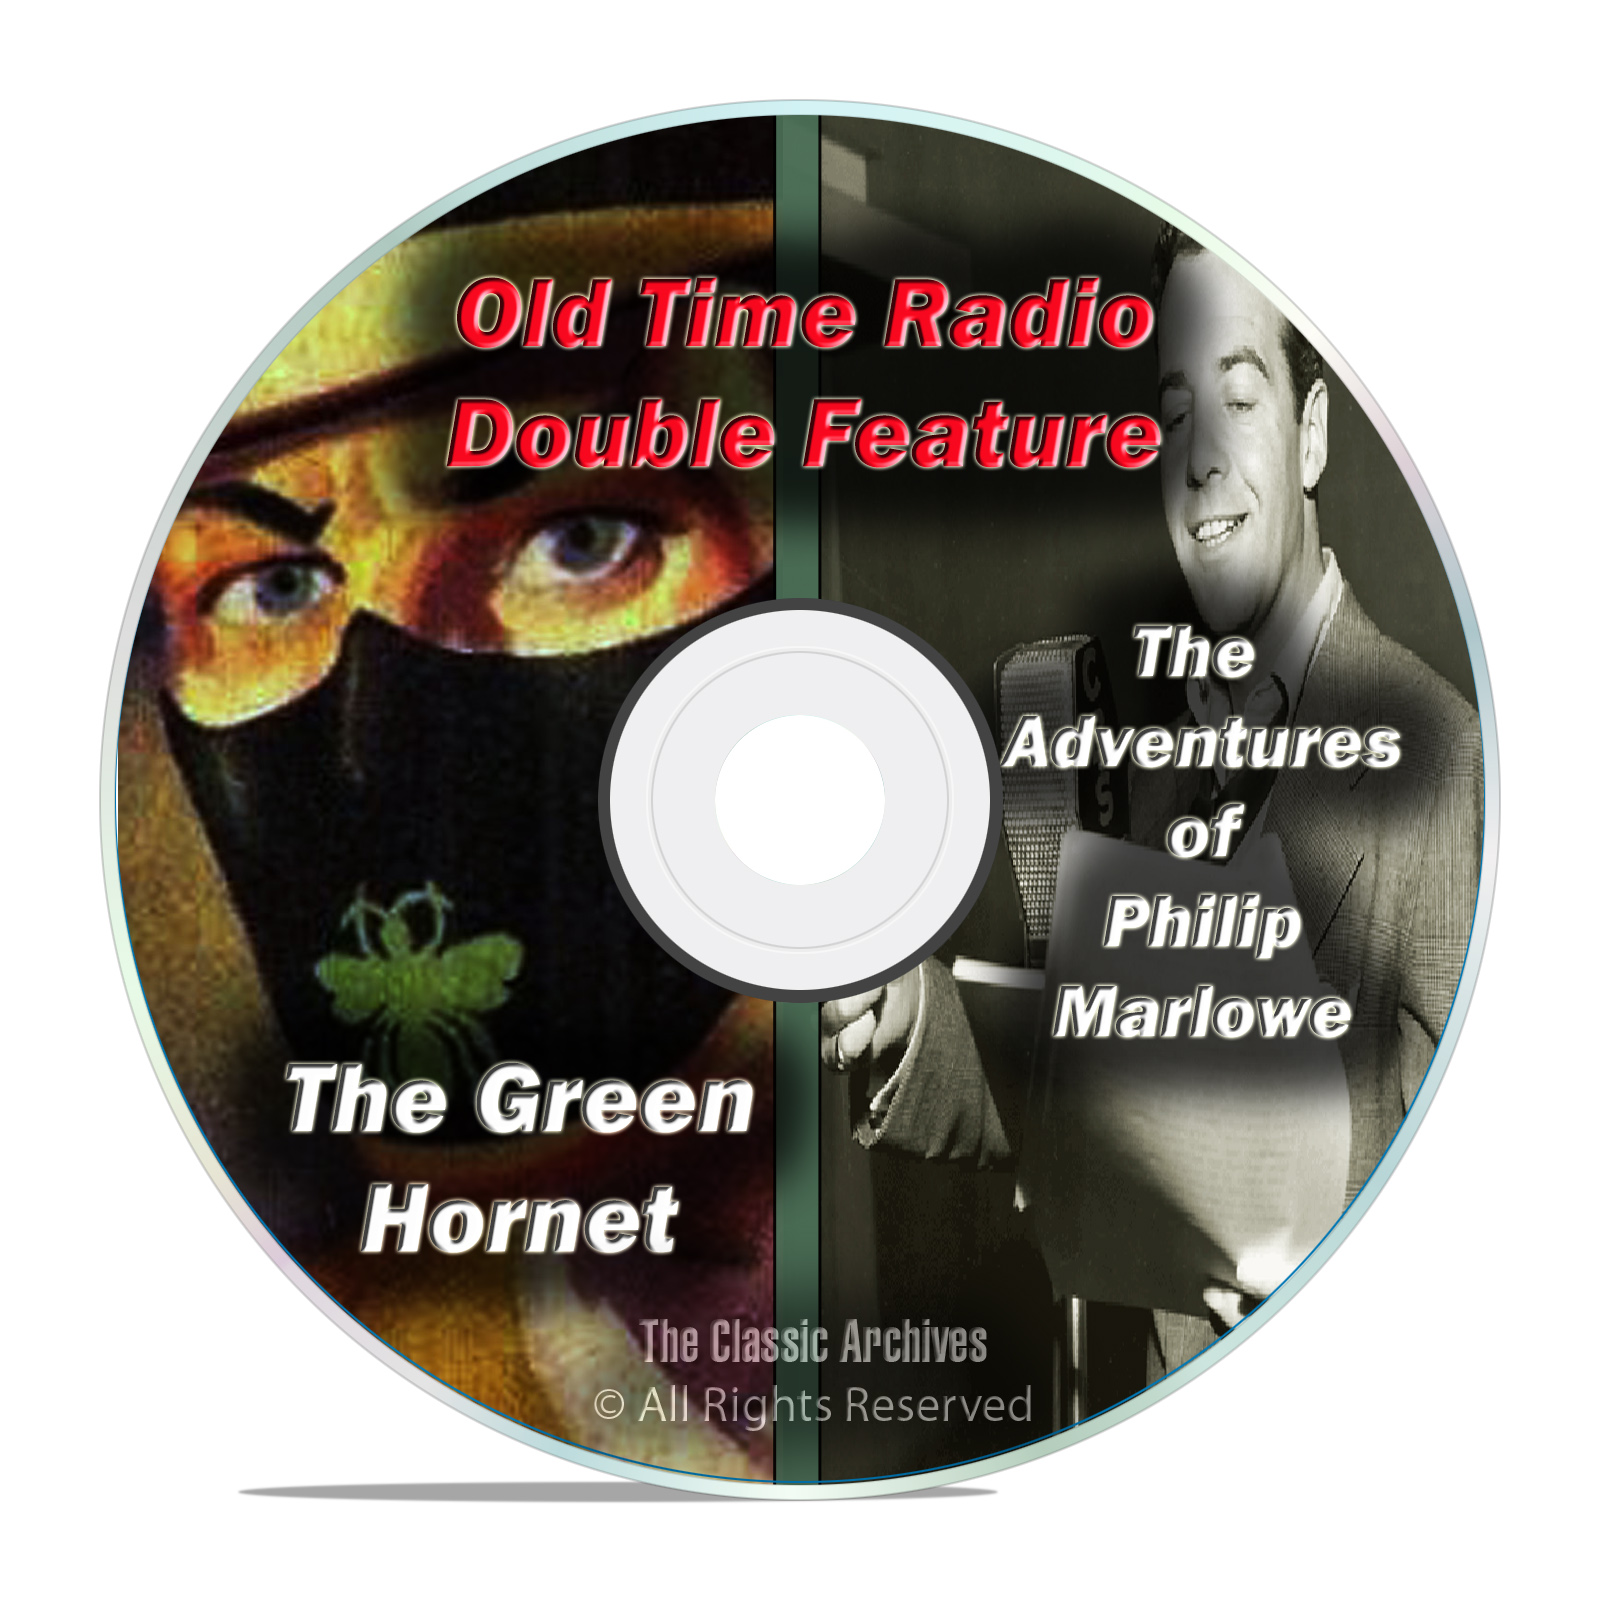 The Green Hornet & Philip Marlowe, 407 shows, FULL SET, Old Time Radio DVD